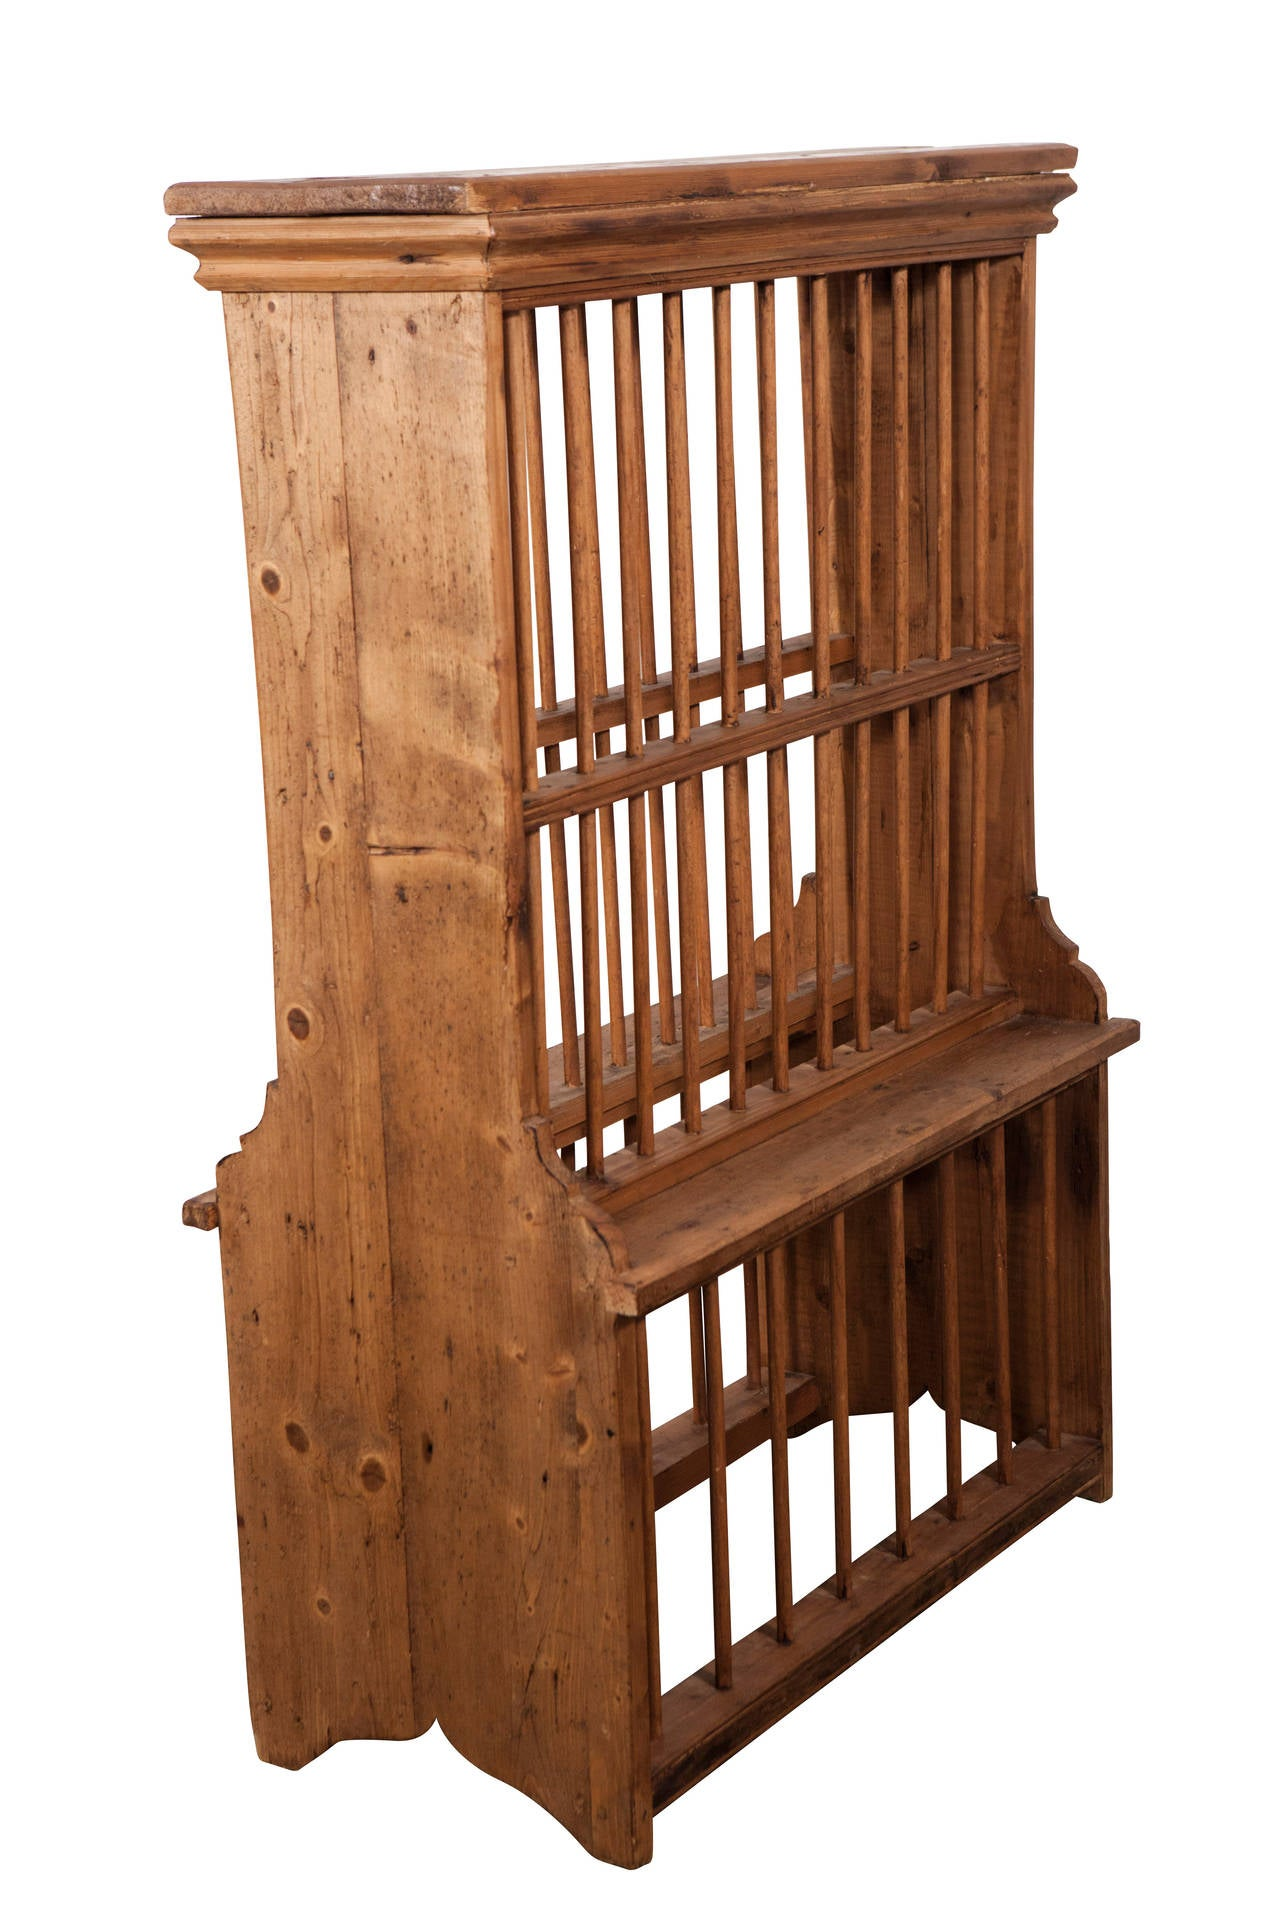 Country English Standing Pine Plate Rack For Sale  sc 1 st  1stDibs & English Standing Pine Plate Rack For Sale at 1stdibs